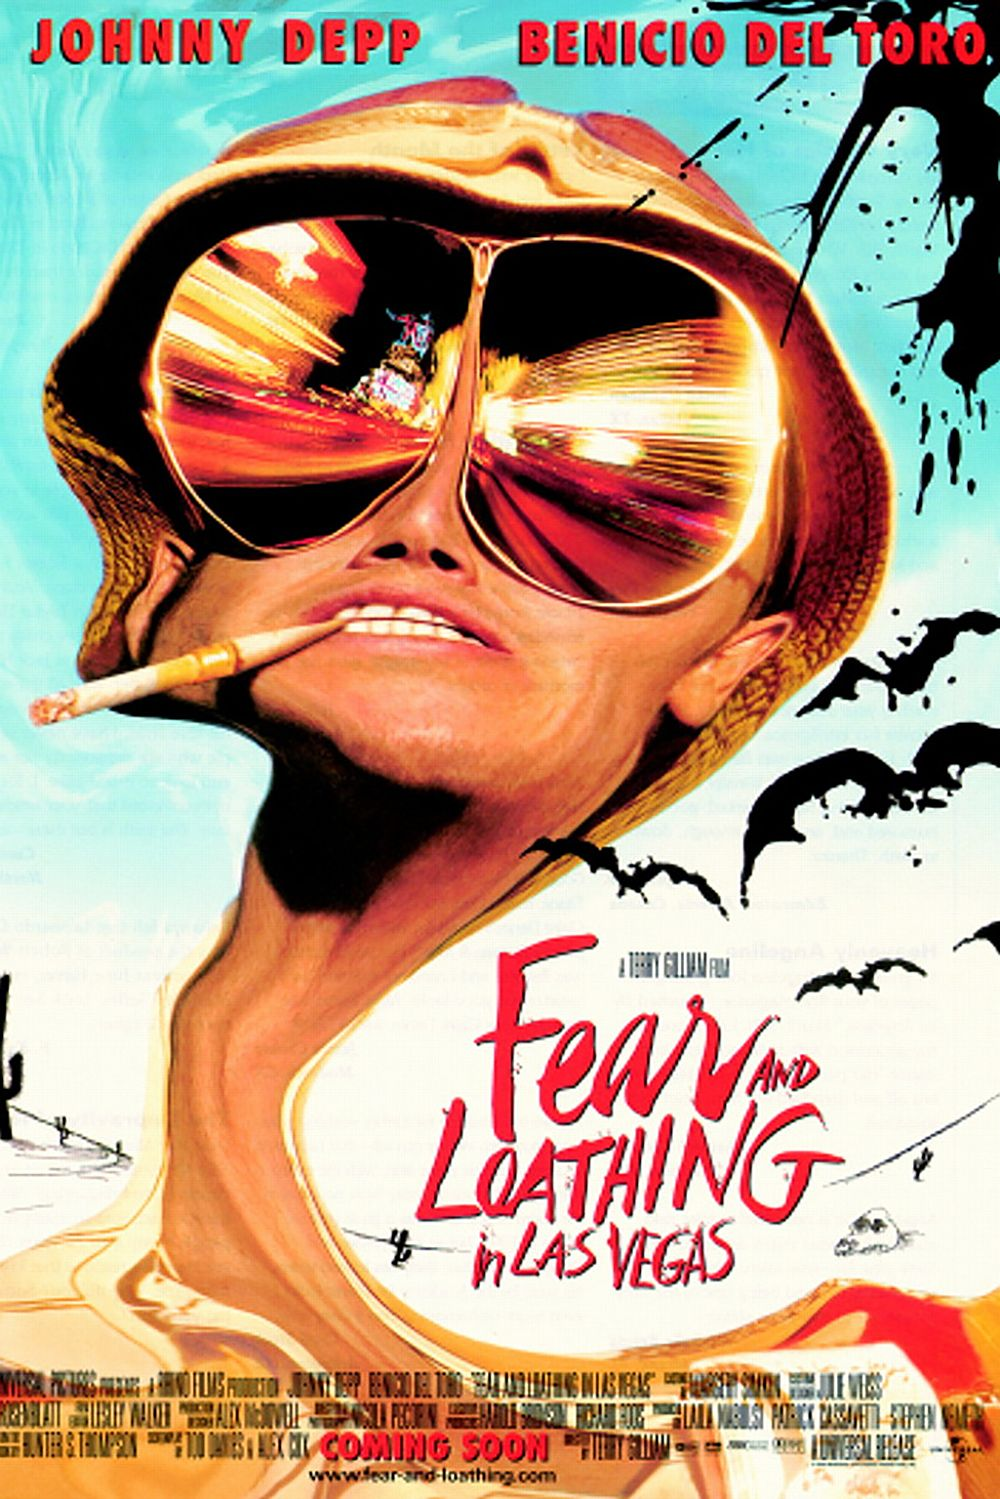 Fear and Loathing in Las Vegas (1998) The film, adapted from Hunter S. Thompson's novel of the same name, failed both critically and financially at first, but has recently amassed a cult following. The story follows Raoul Duke (Johnny Depp) and Dr. Gonzo (Benicio del Toro) on a journalistic assignment that ends up being an exploration of Las Vegas under the influence of hallucinogenic drugs and copious other substances.